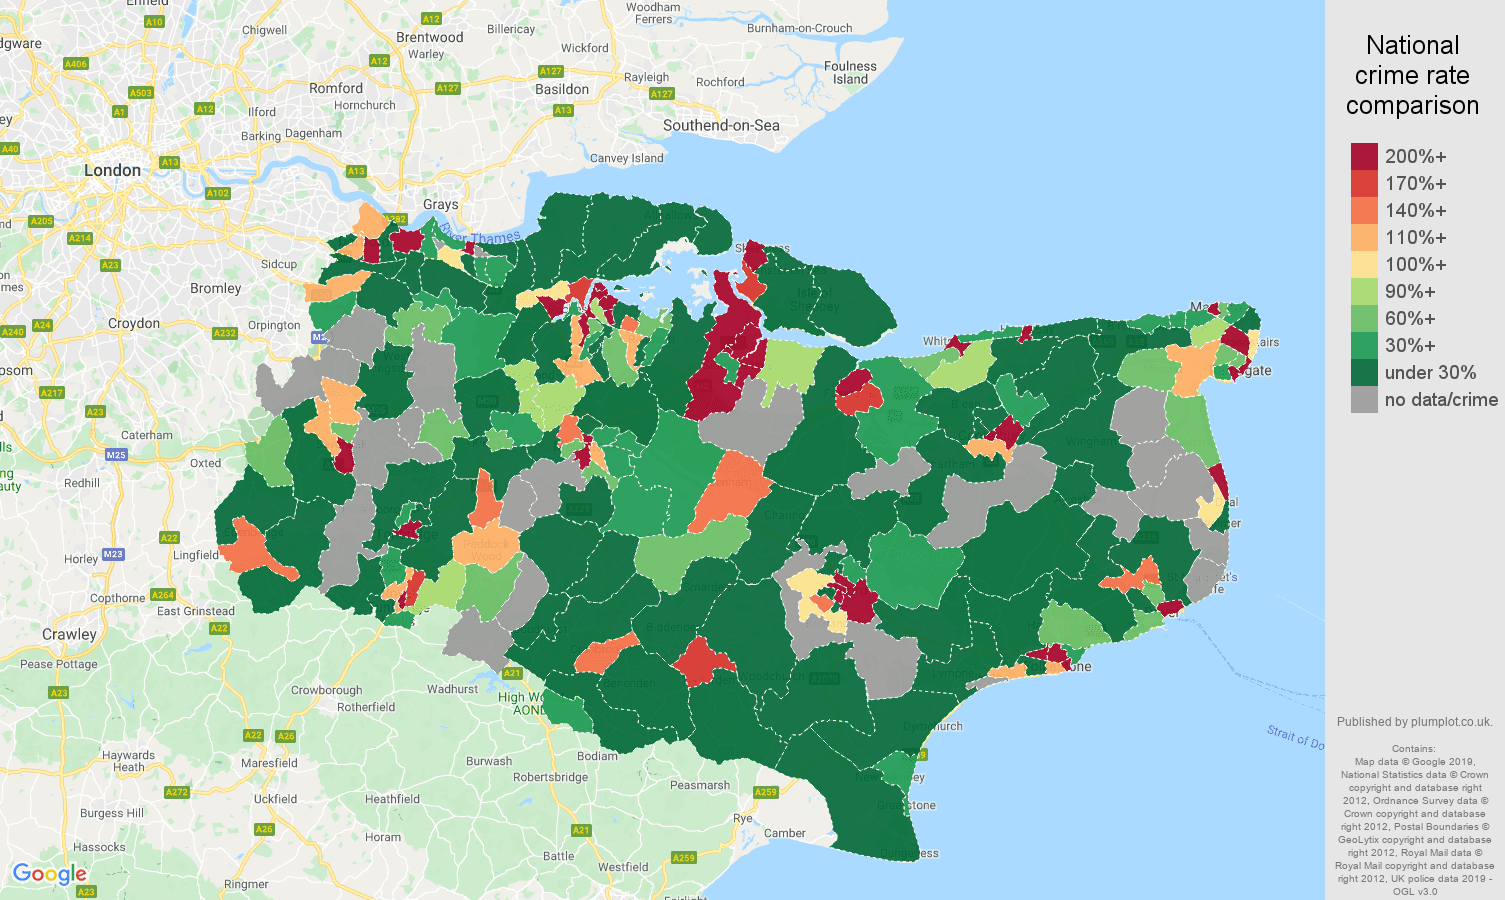 Kent shoplifting crime rate comparison map